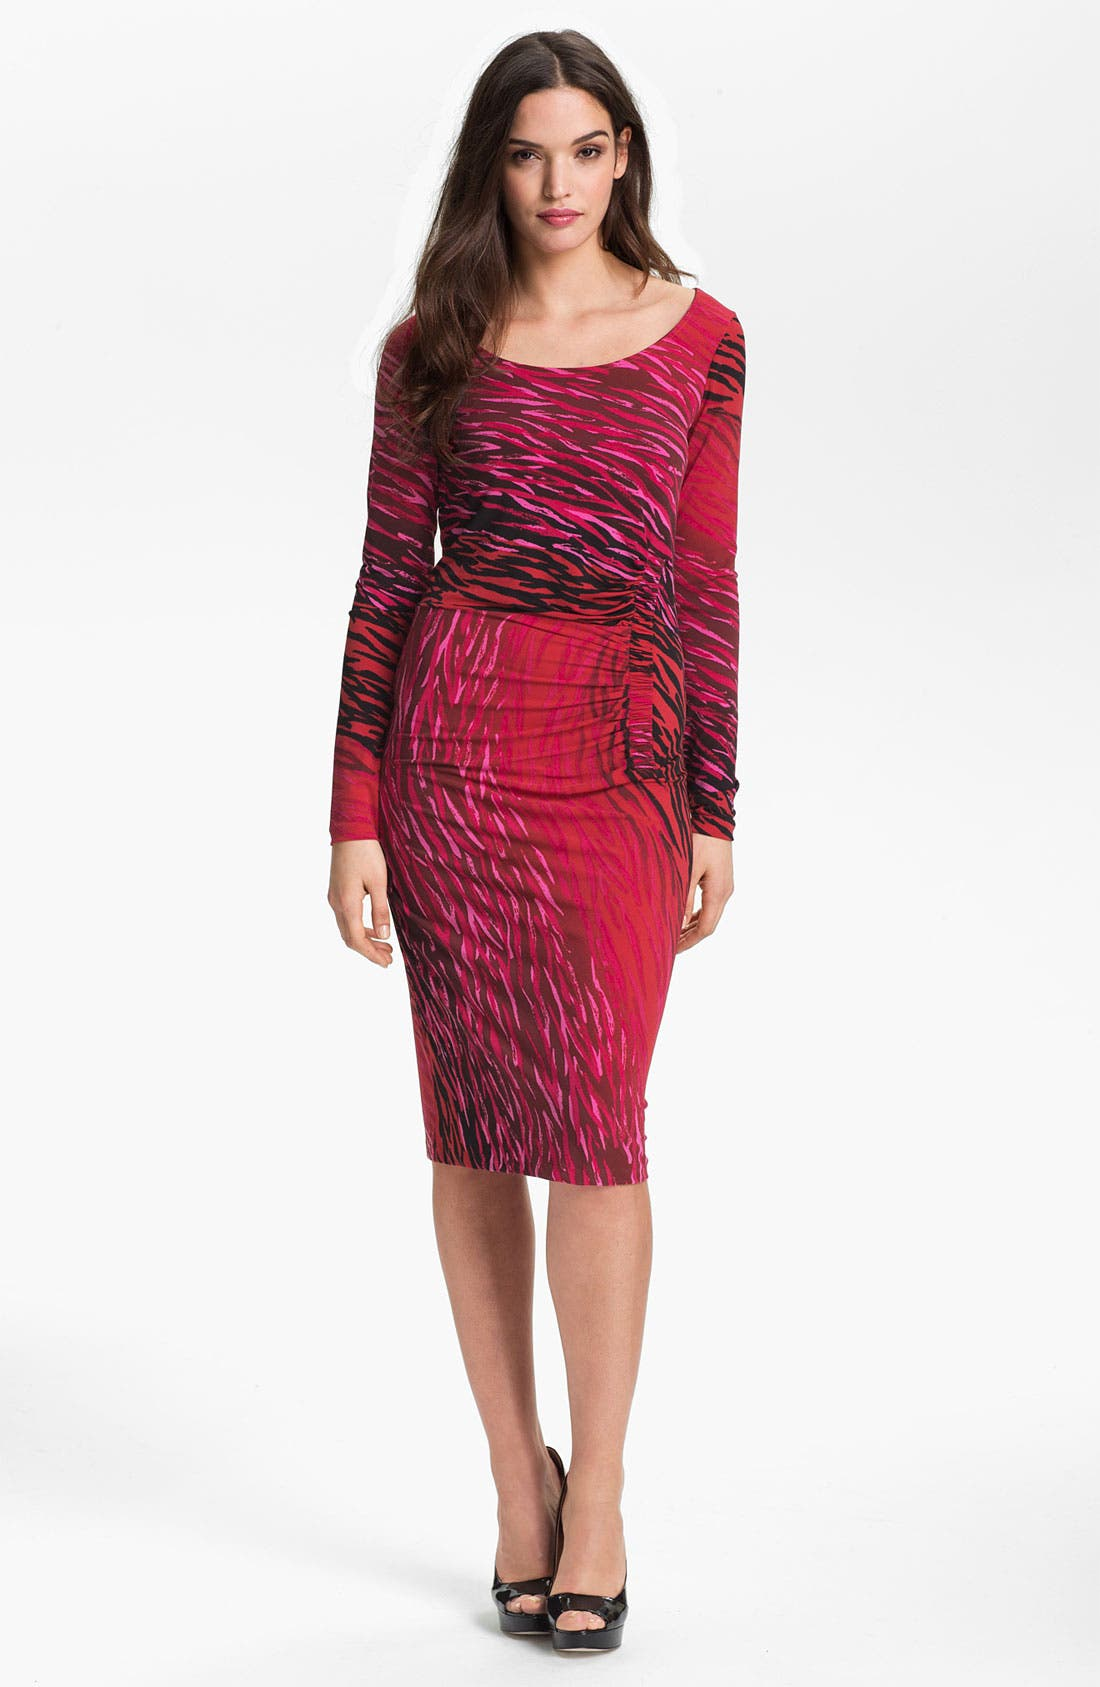 Main Image - Anne Klein Ombré Zebra Print Dress